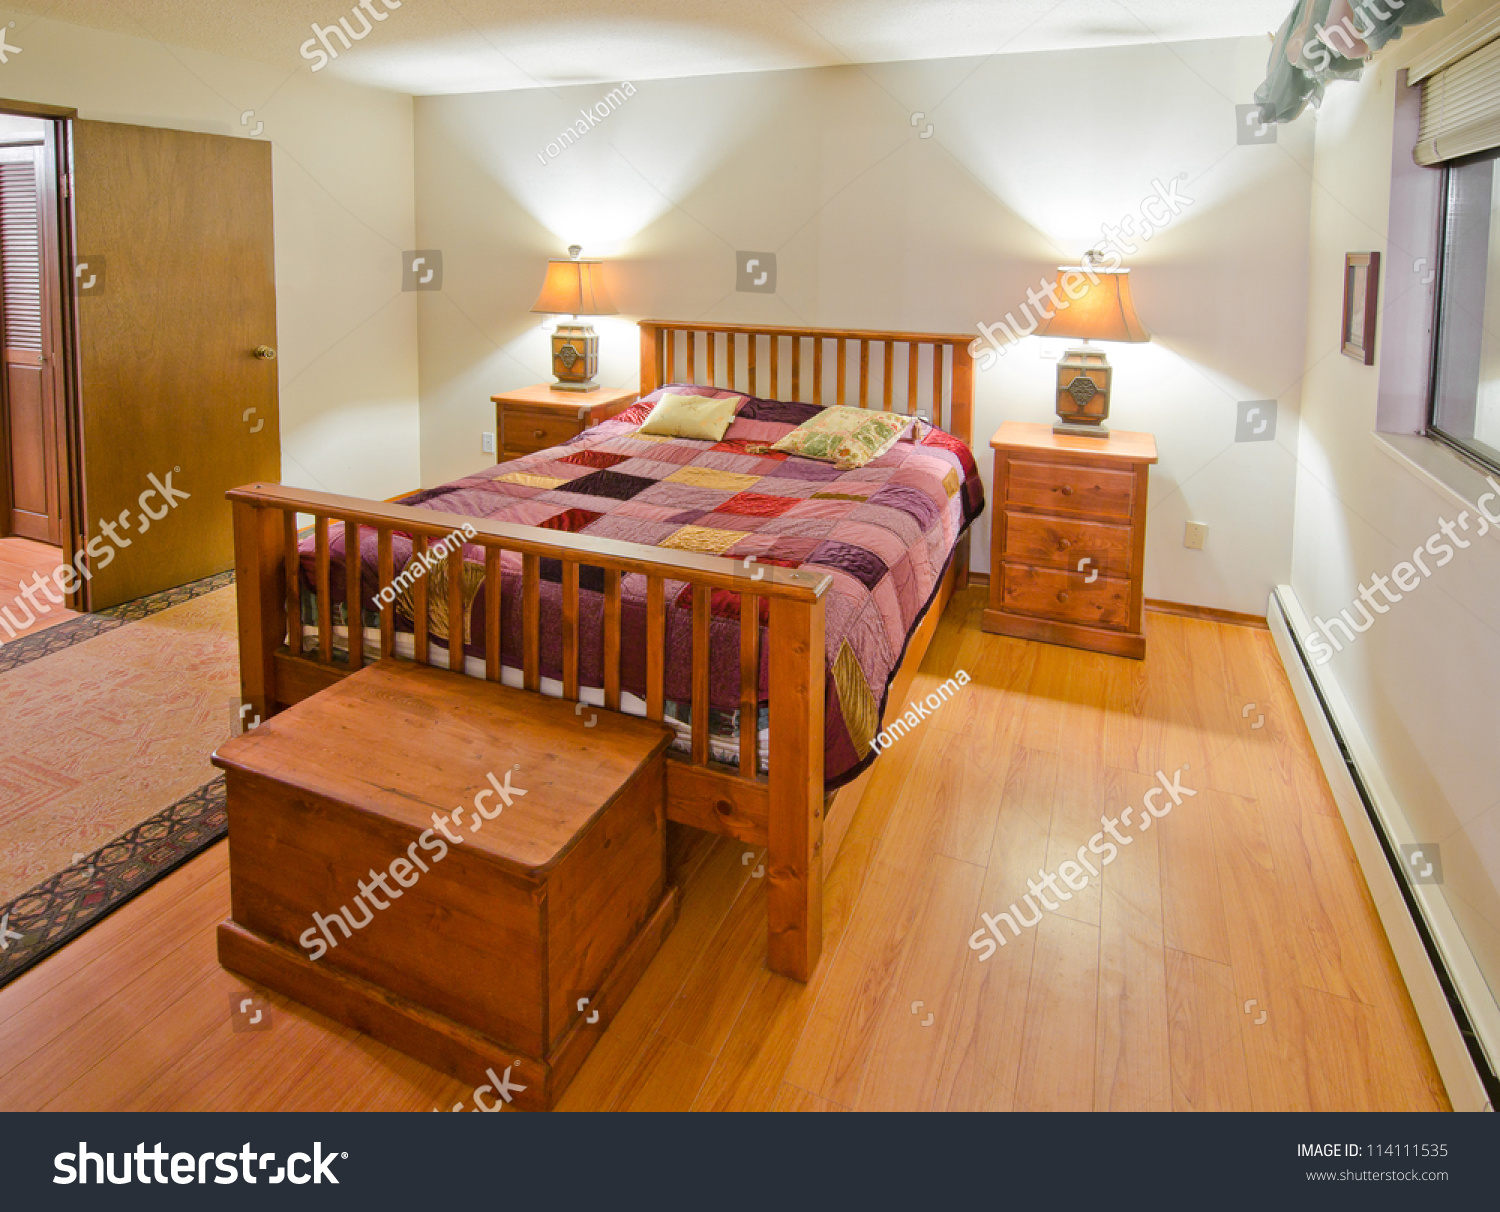 Nice Looking Bedroom Interior Design Stock Photo